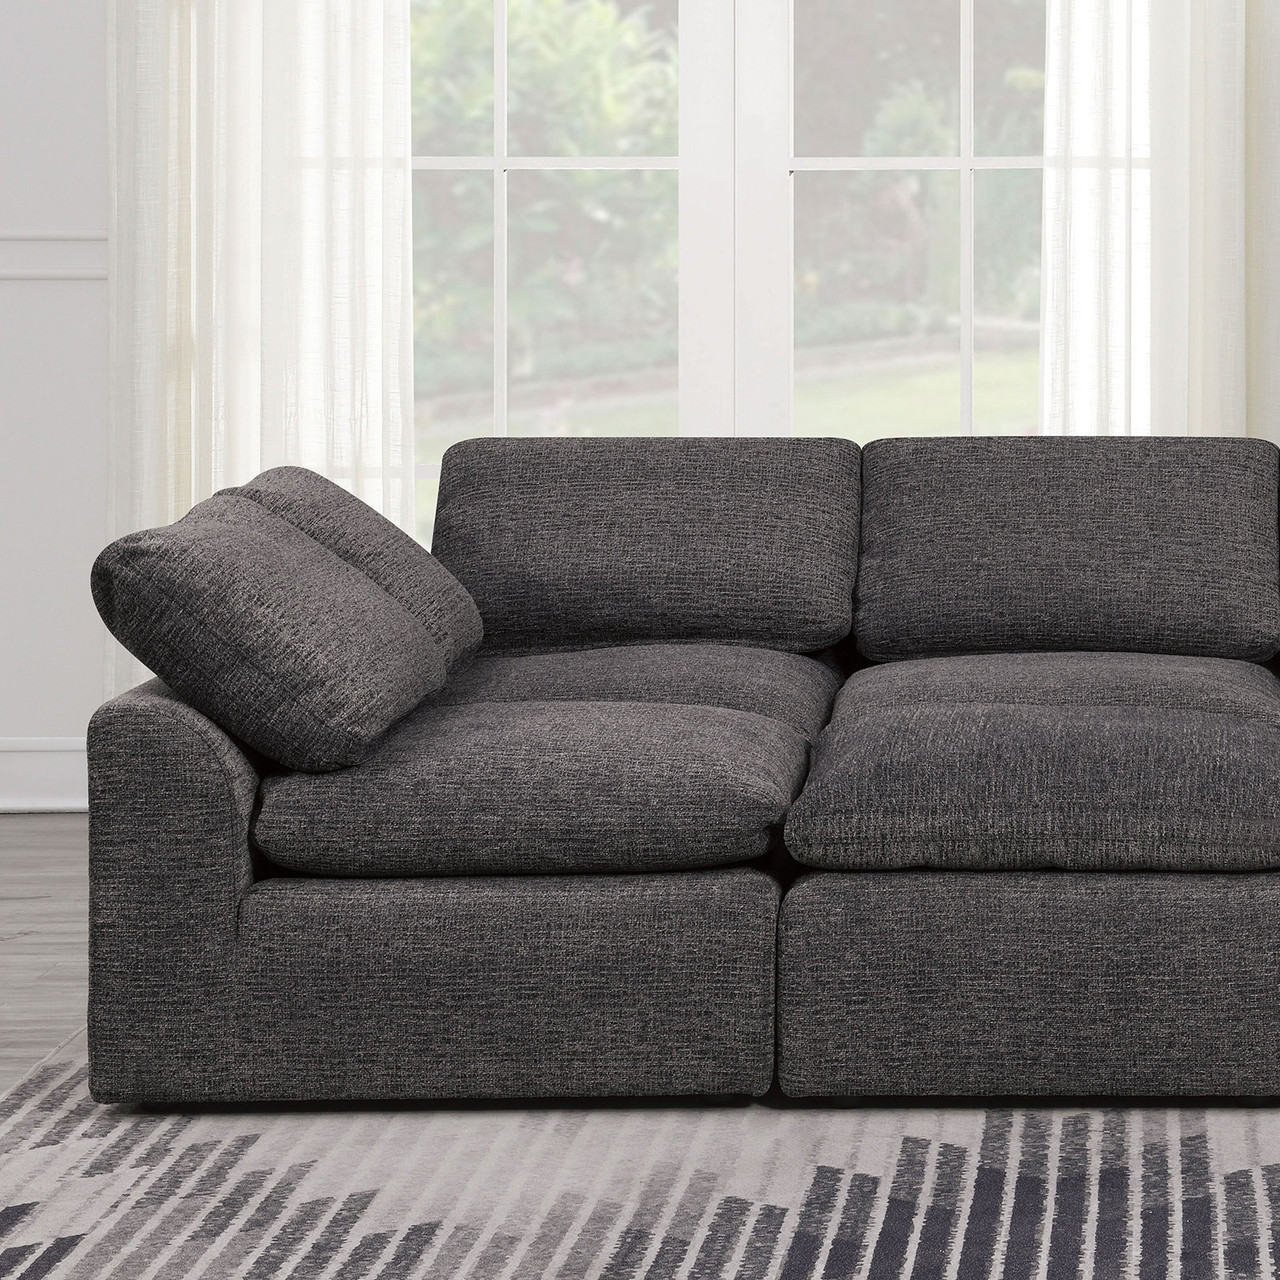 - The Joel Contemporary Sleeper Sofa Available At Furniture Express